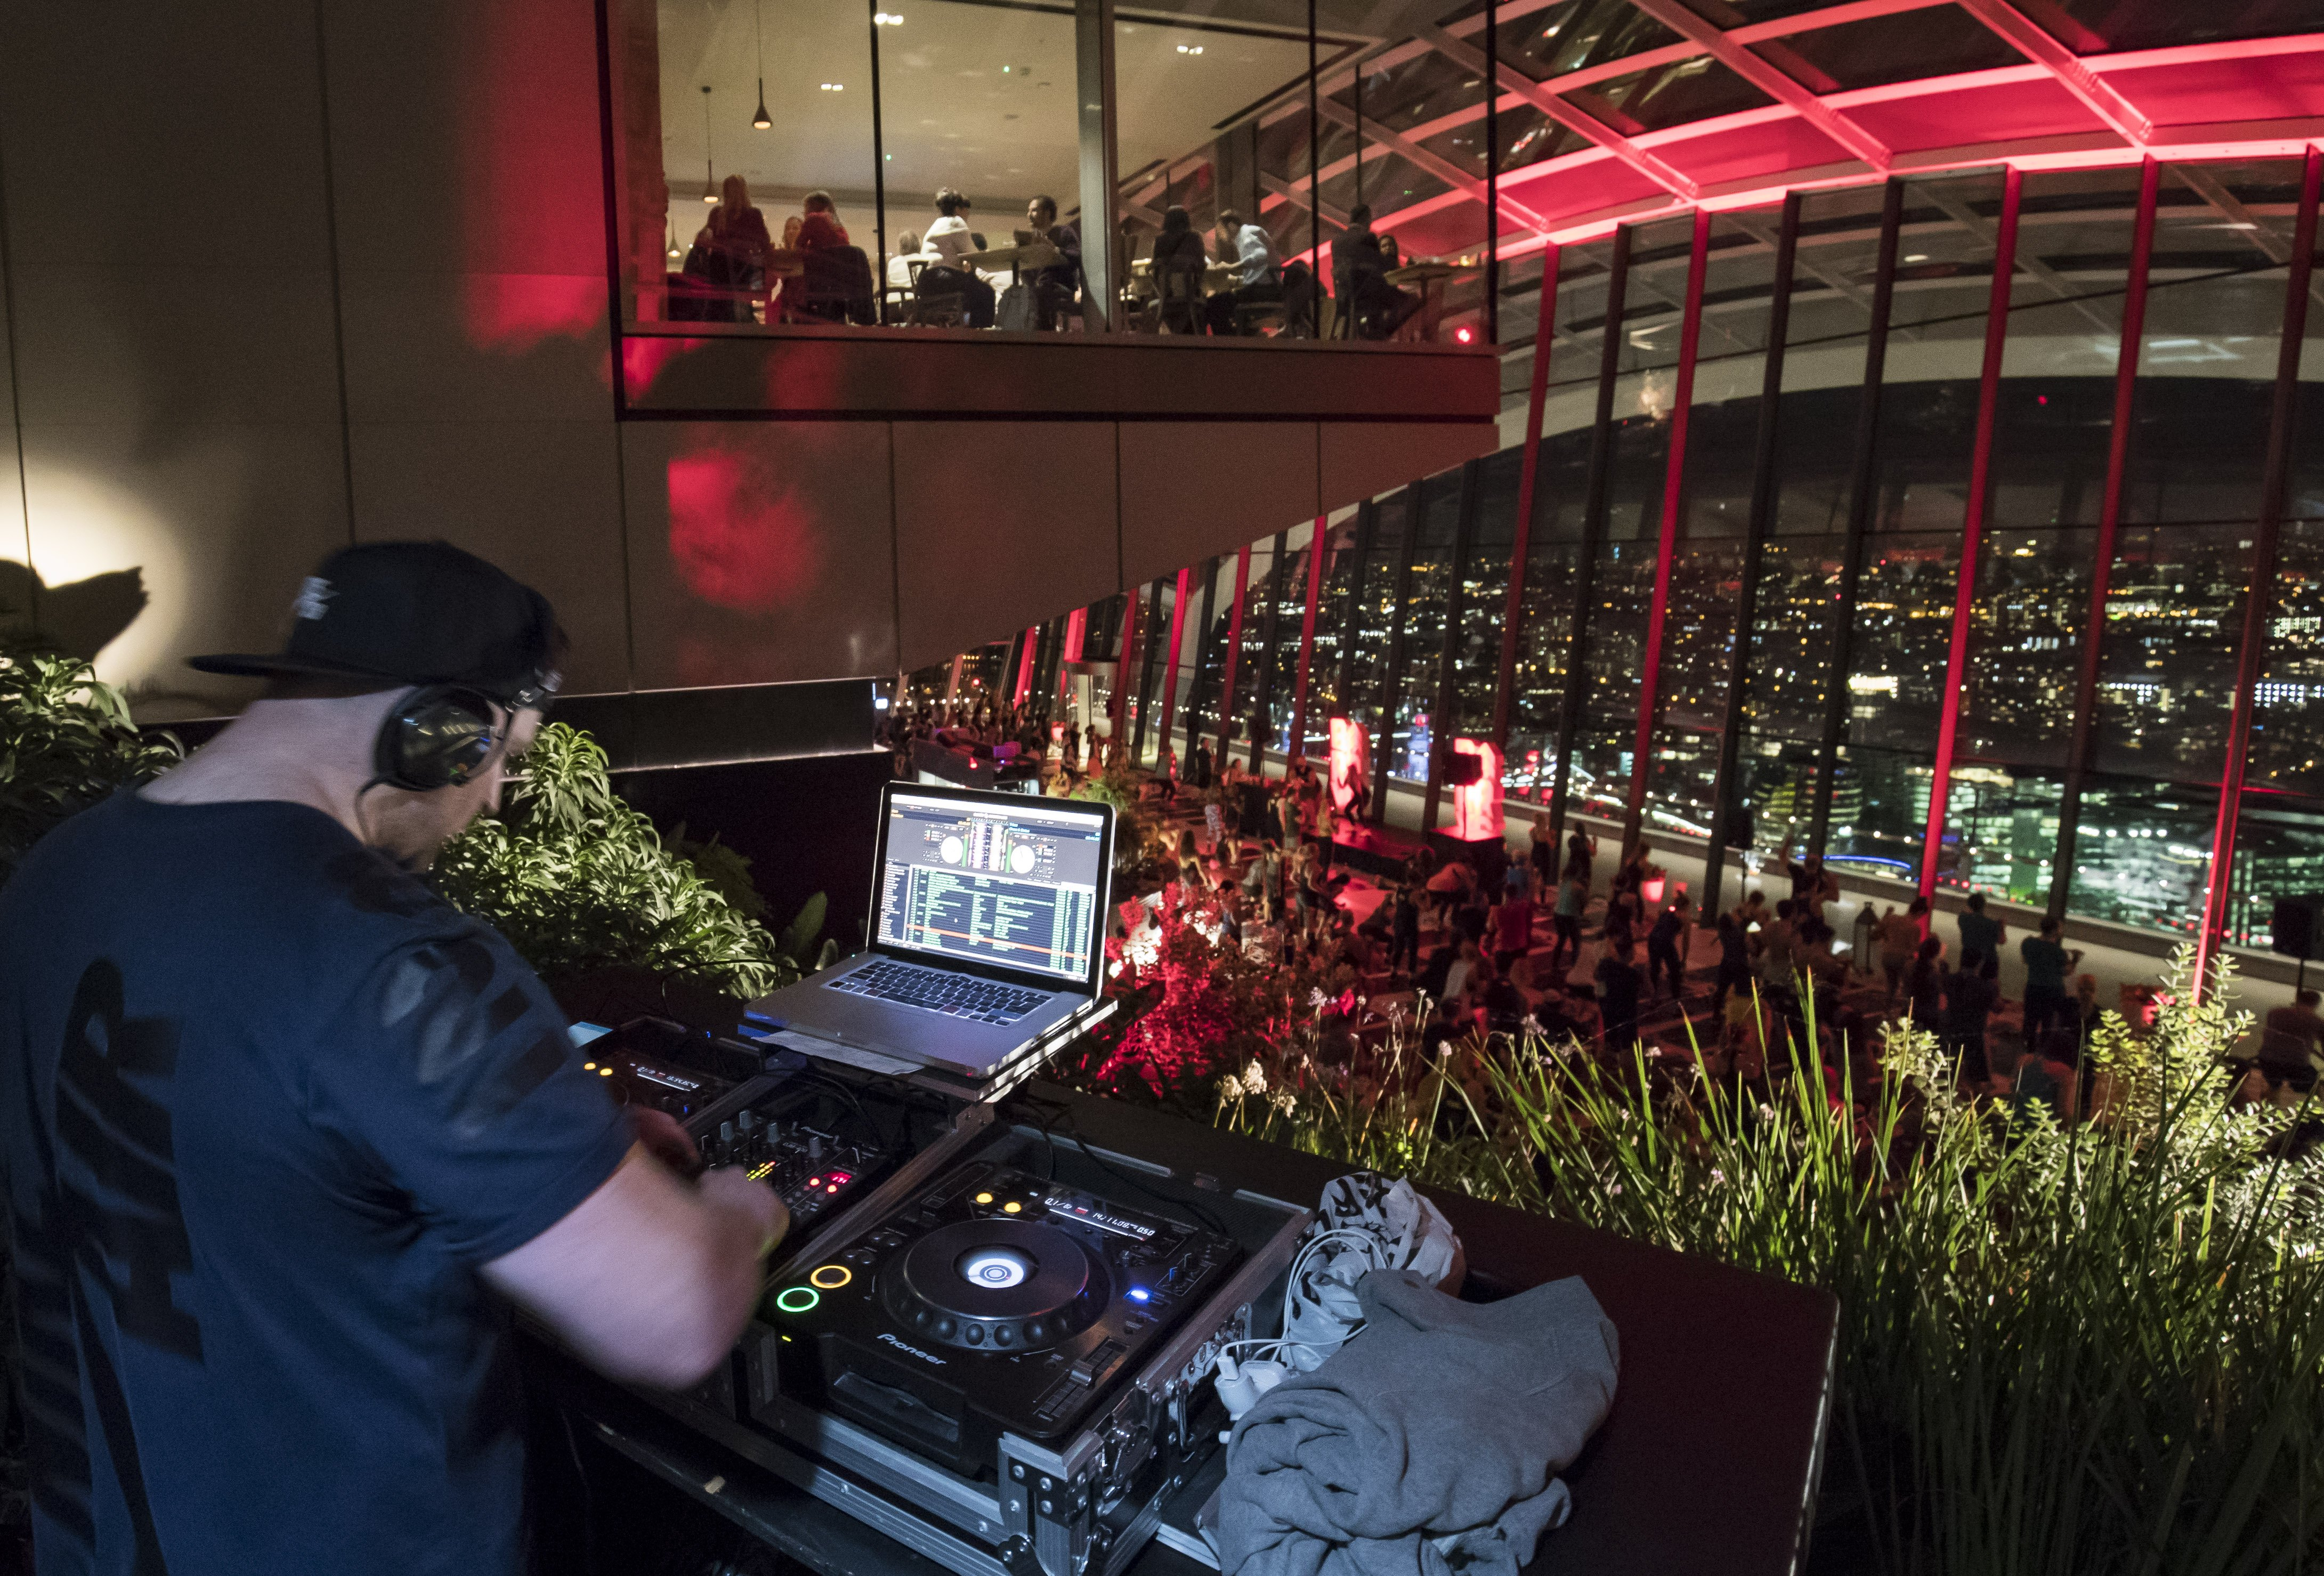 DJ overlooking Barry's Bootcamp nighttime fitness class in the London Sky Garden in front of large glass windows